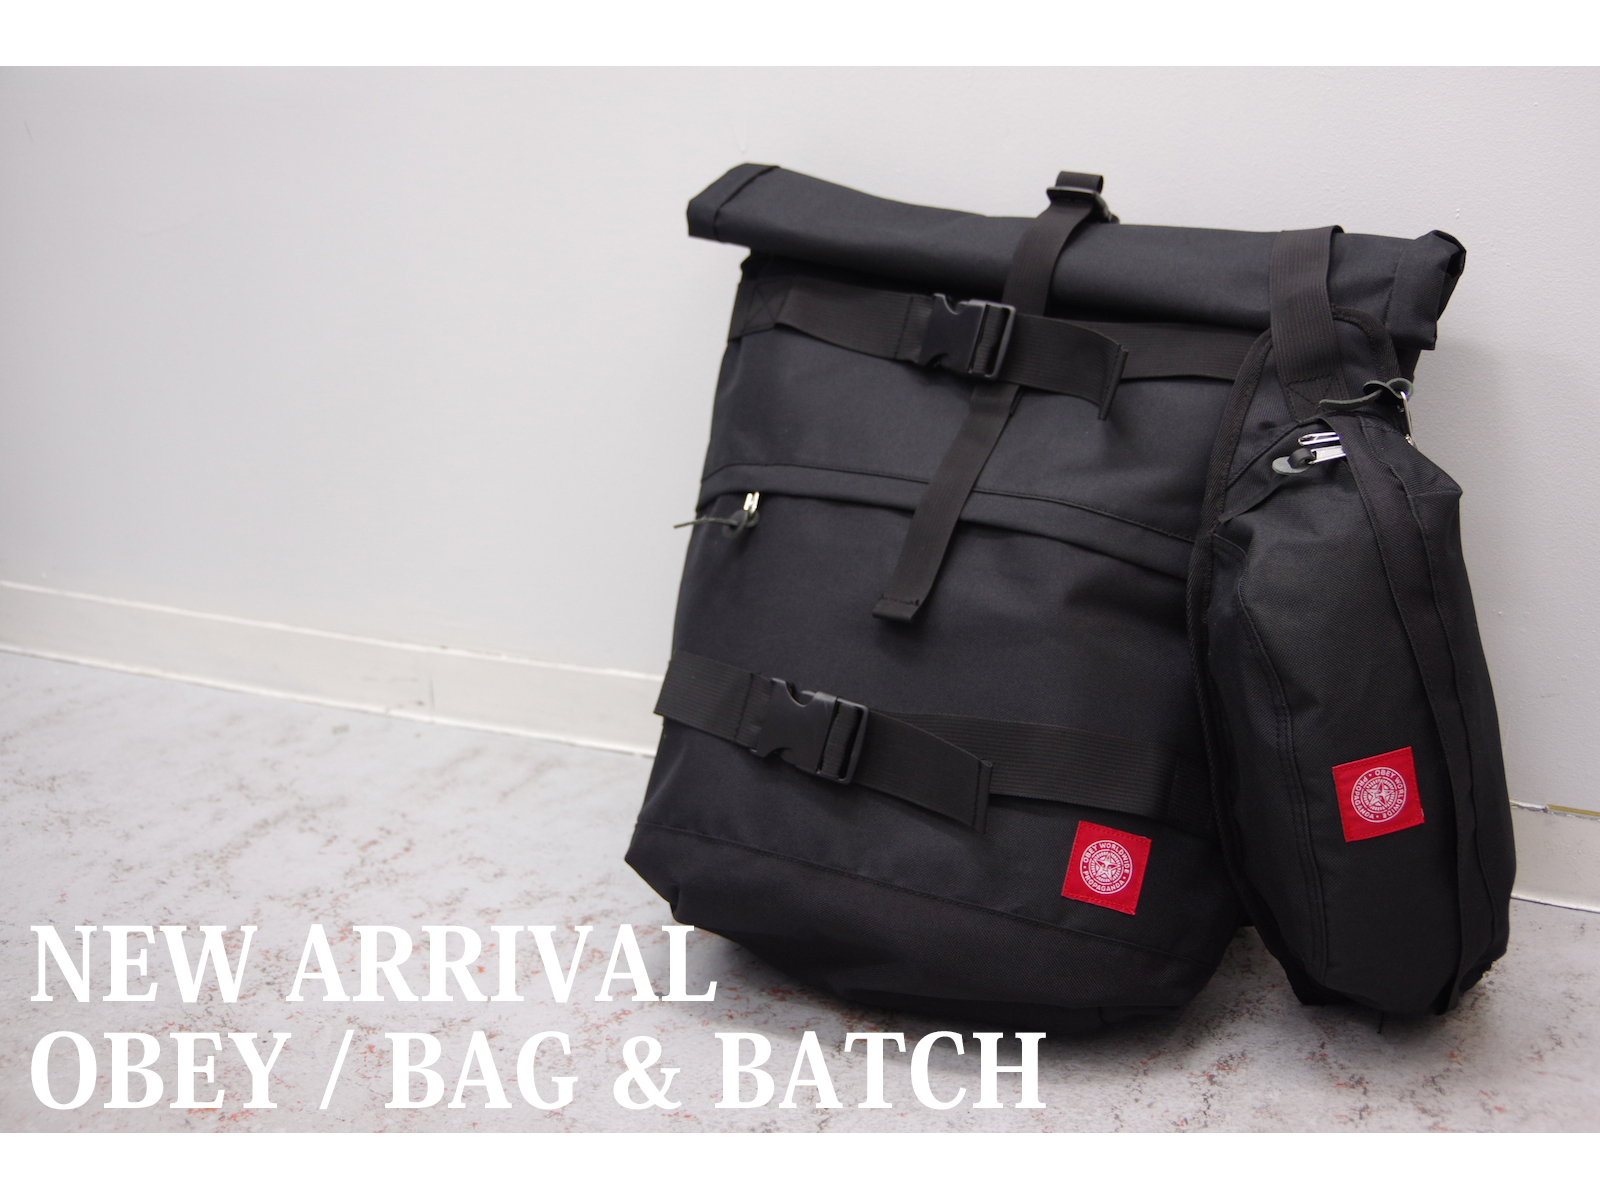 NEW ARRIVAL – OBEY / BAG & BATCH